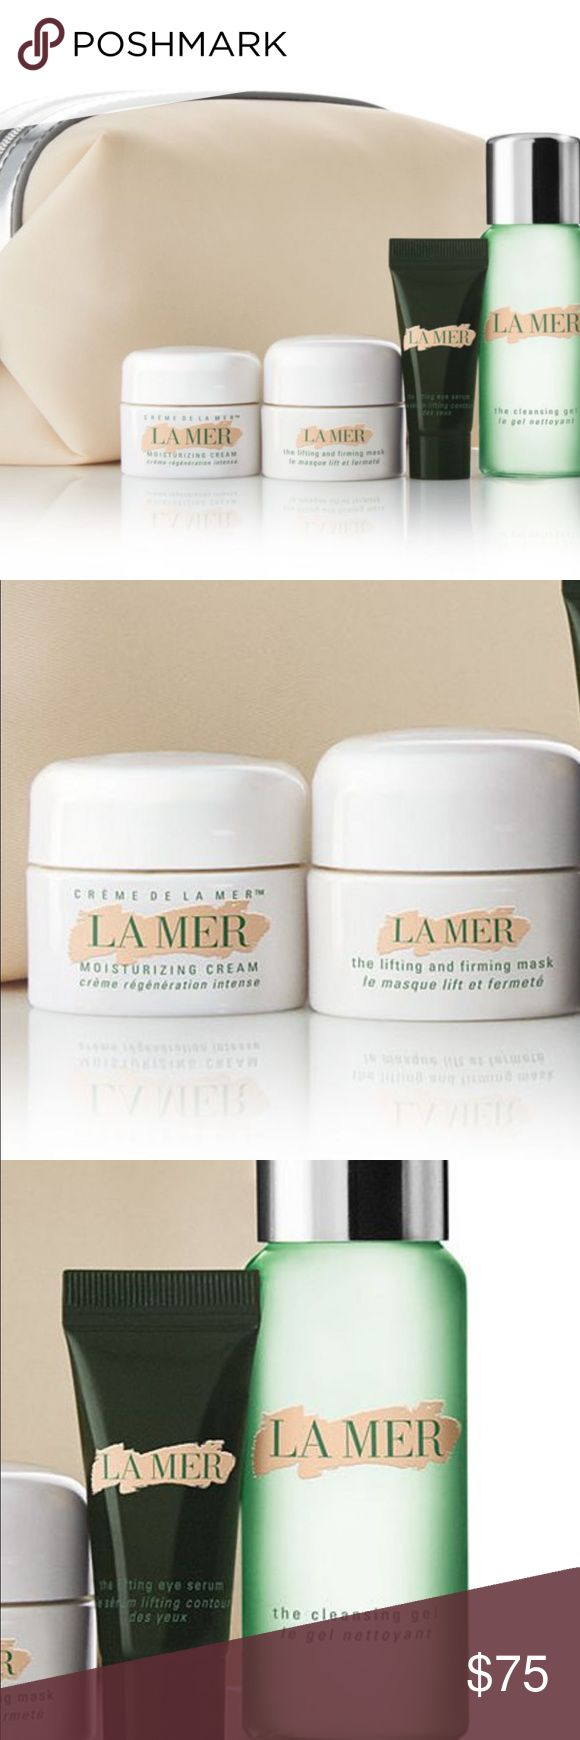 La mer 5 piece bundle La mer deluxe samples of Crème de la Mer, The Lifting & Firming Mask, The Lifting Eye Serum and The Cleansing Gel, all in a cosmetic case La Mer Makeup